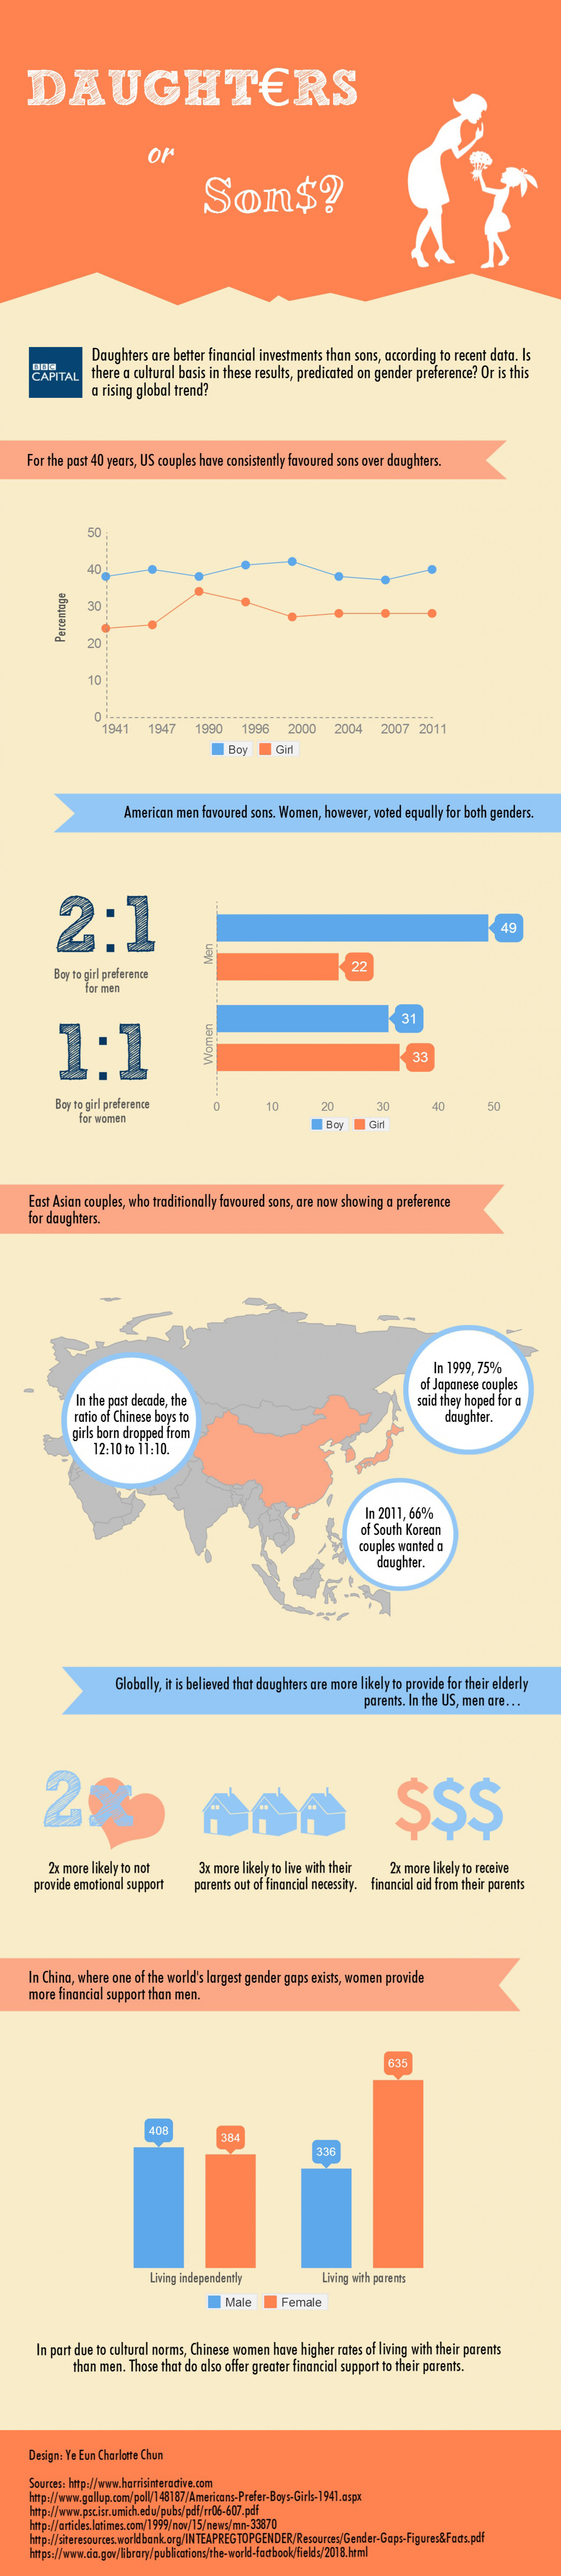 Daughters or Sons? Infographic